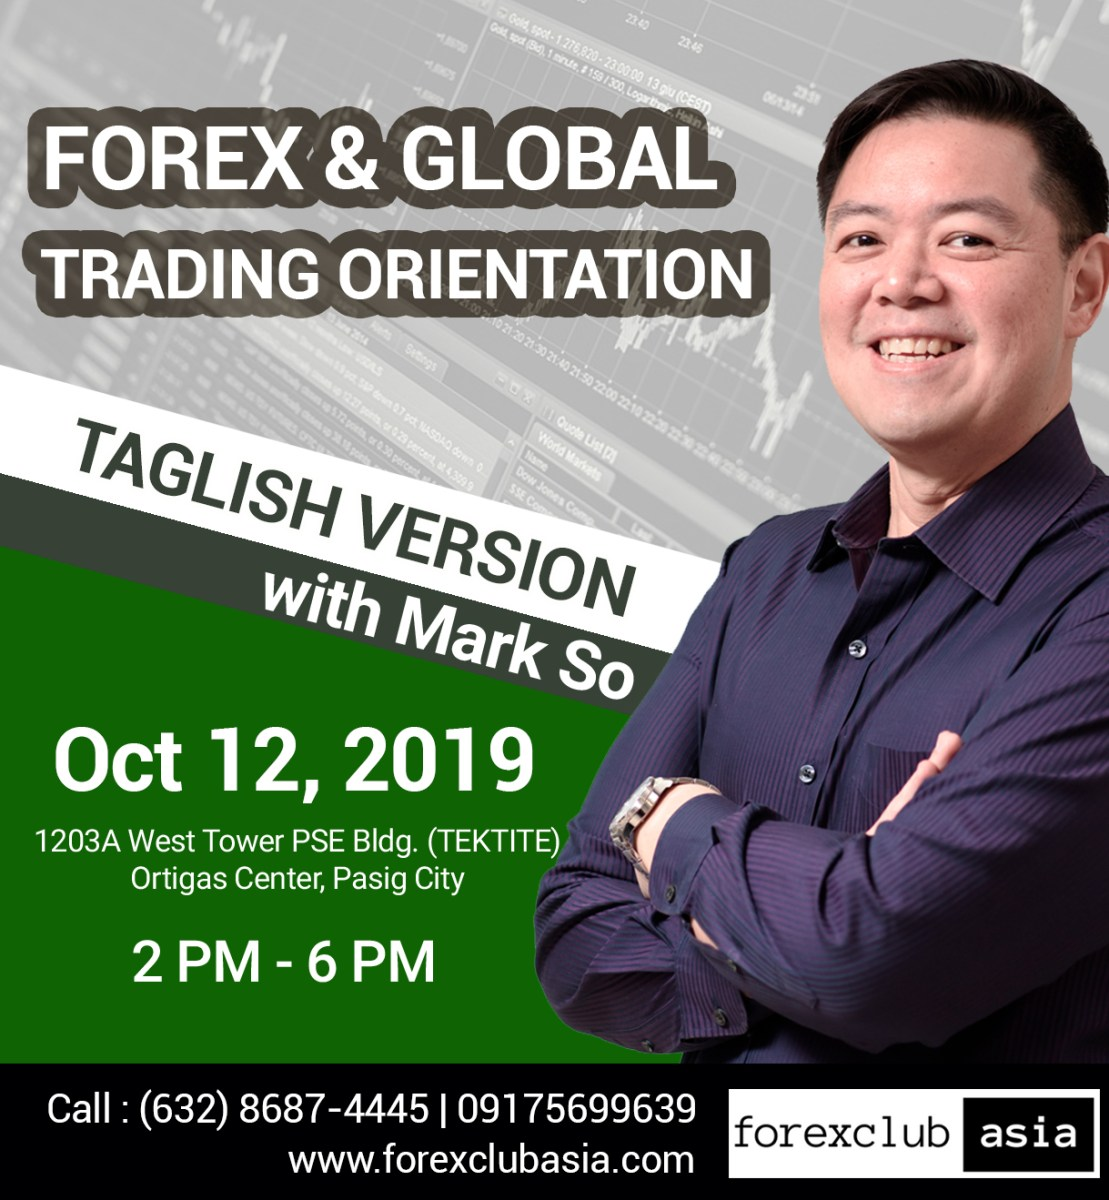 Forex sales pitch